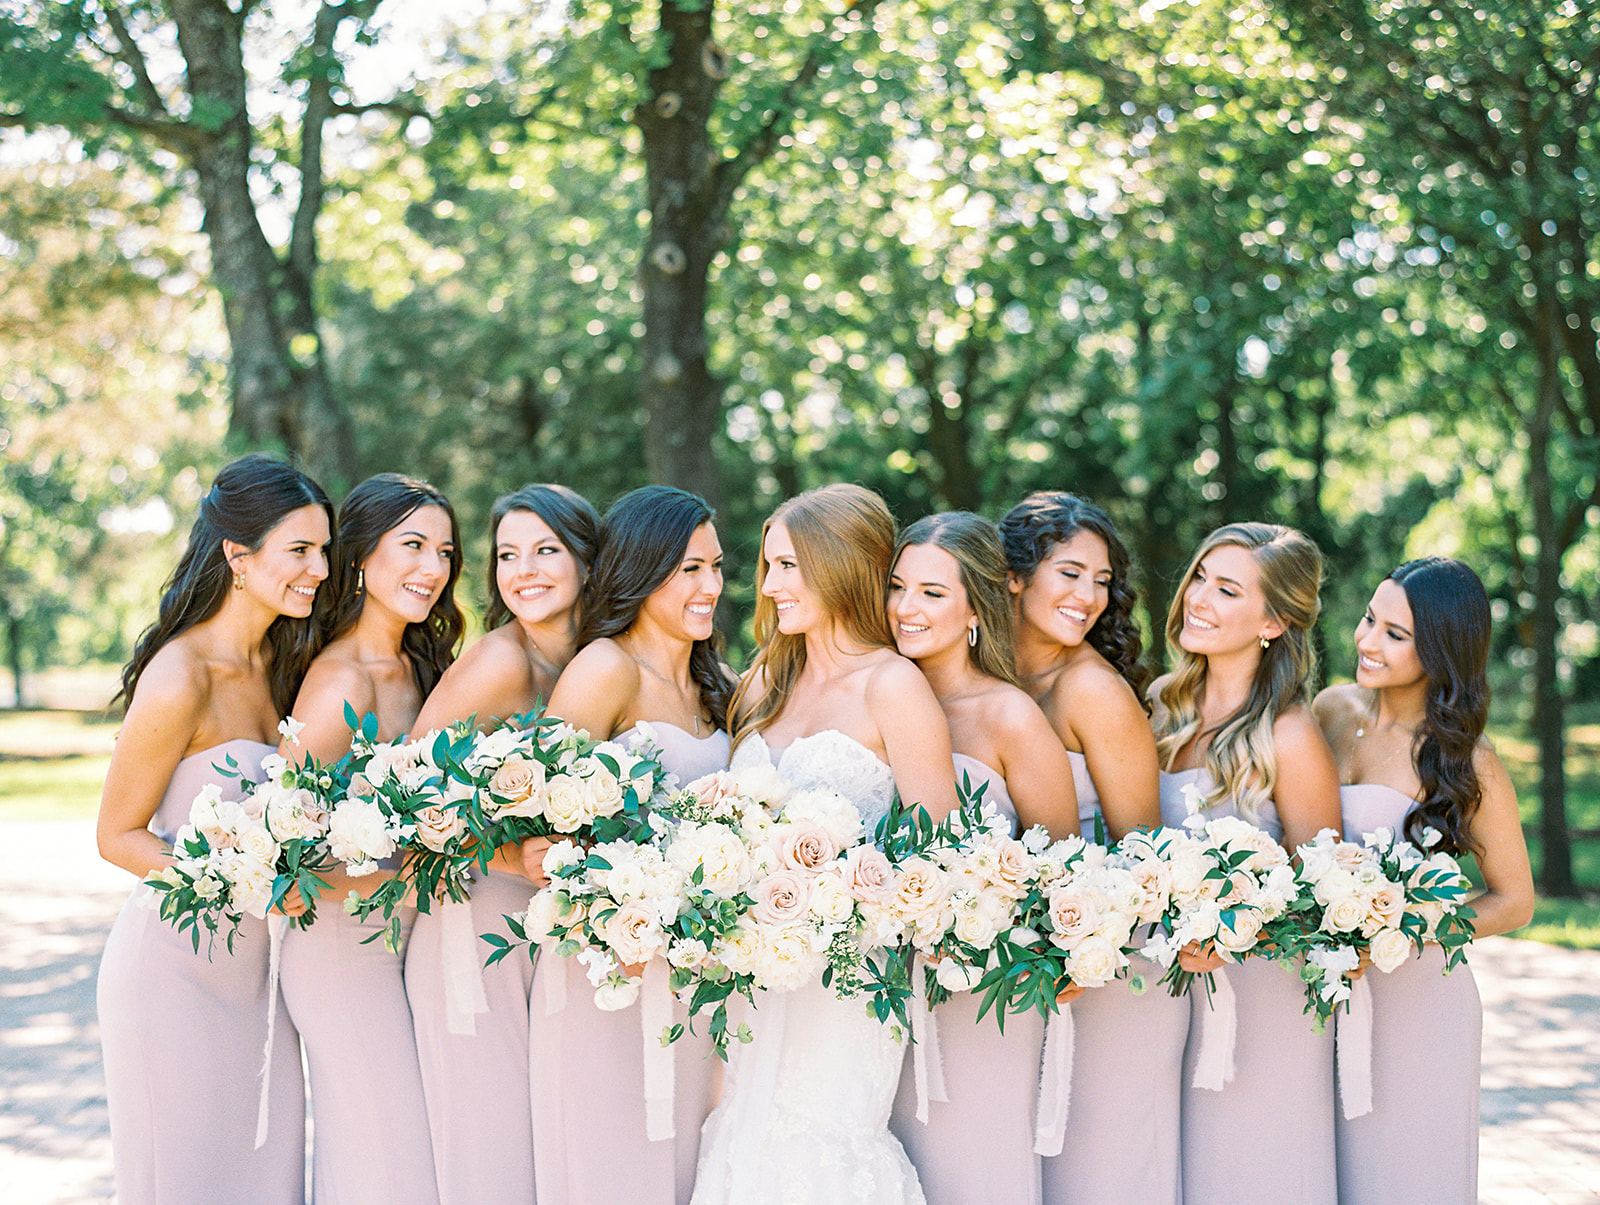 Mauve bridesmaids dresses from Beside the Bride